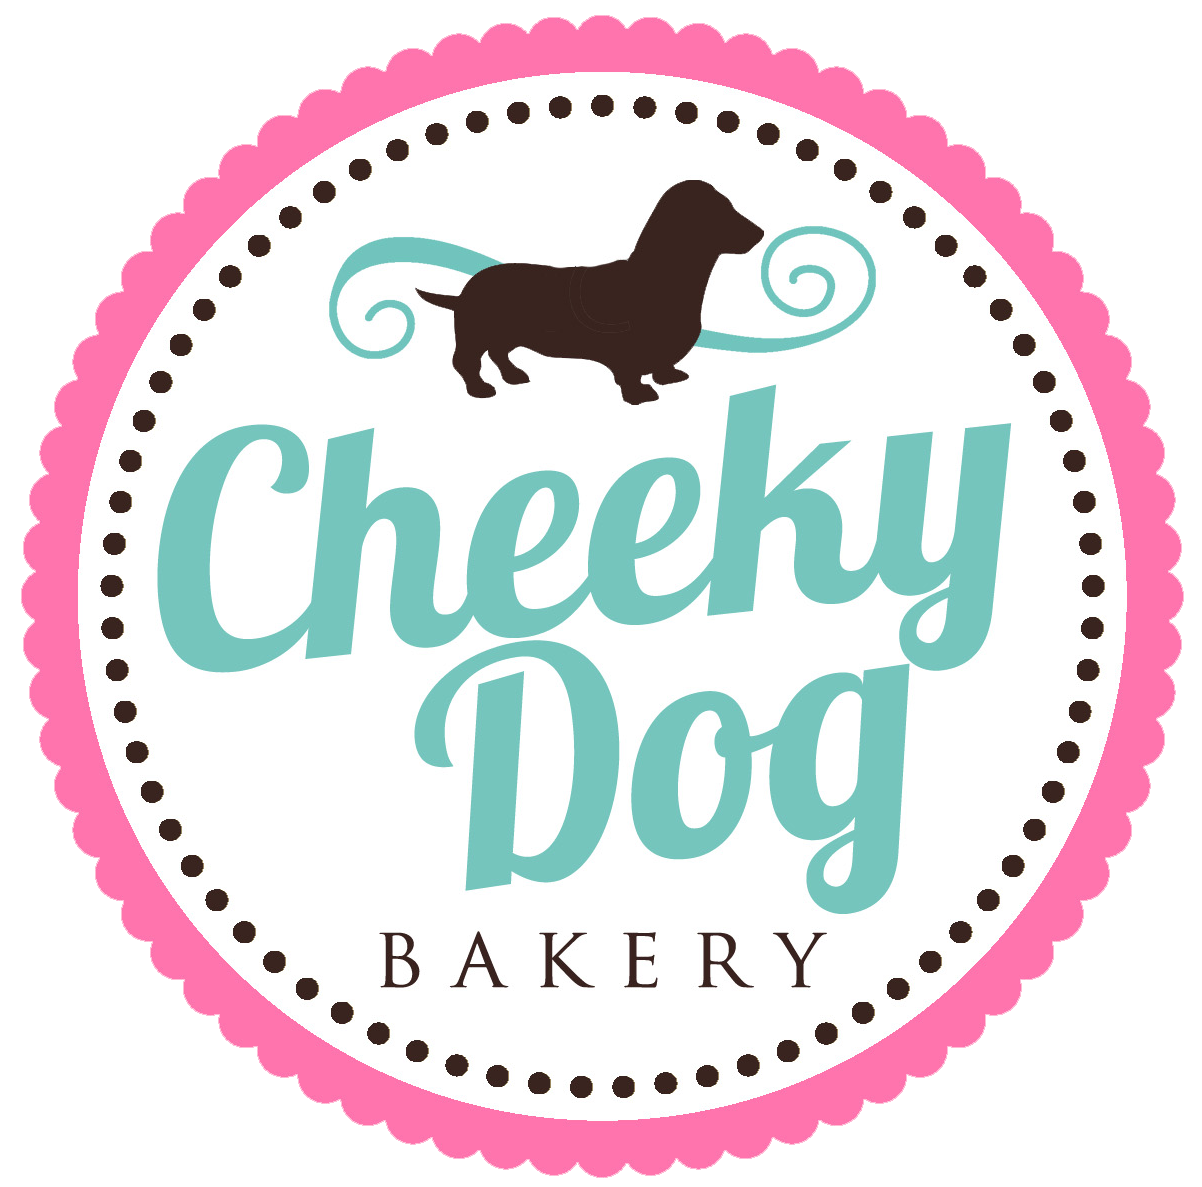 Cheeky Dog Bakery